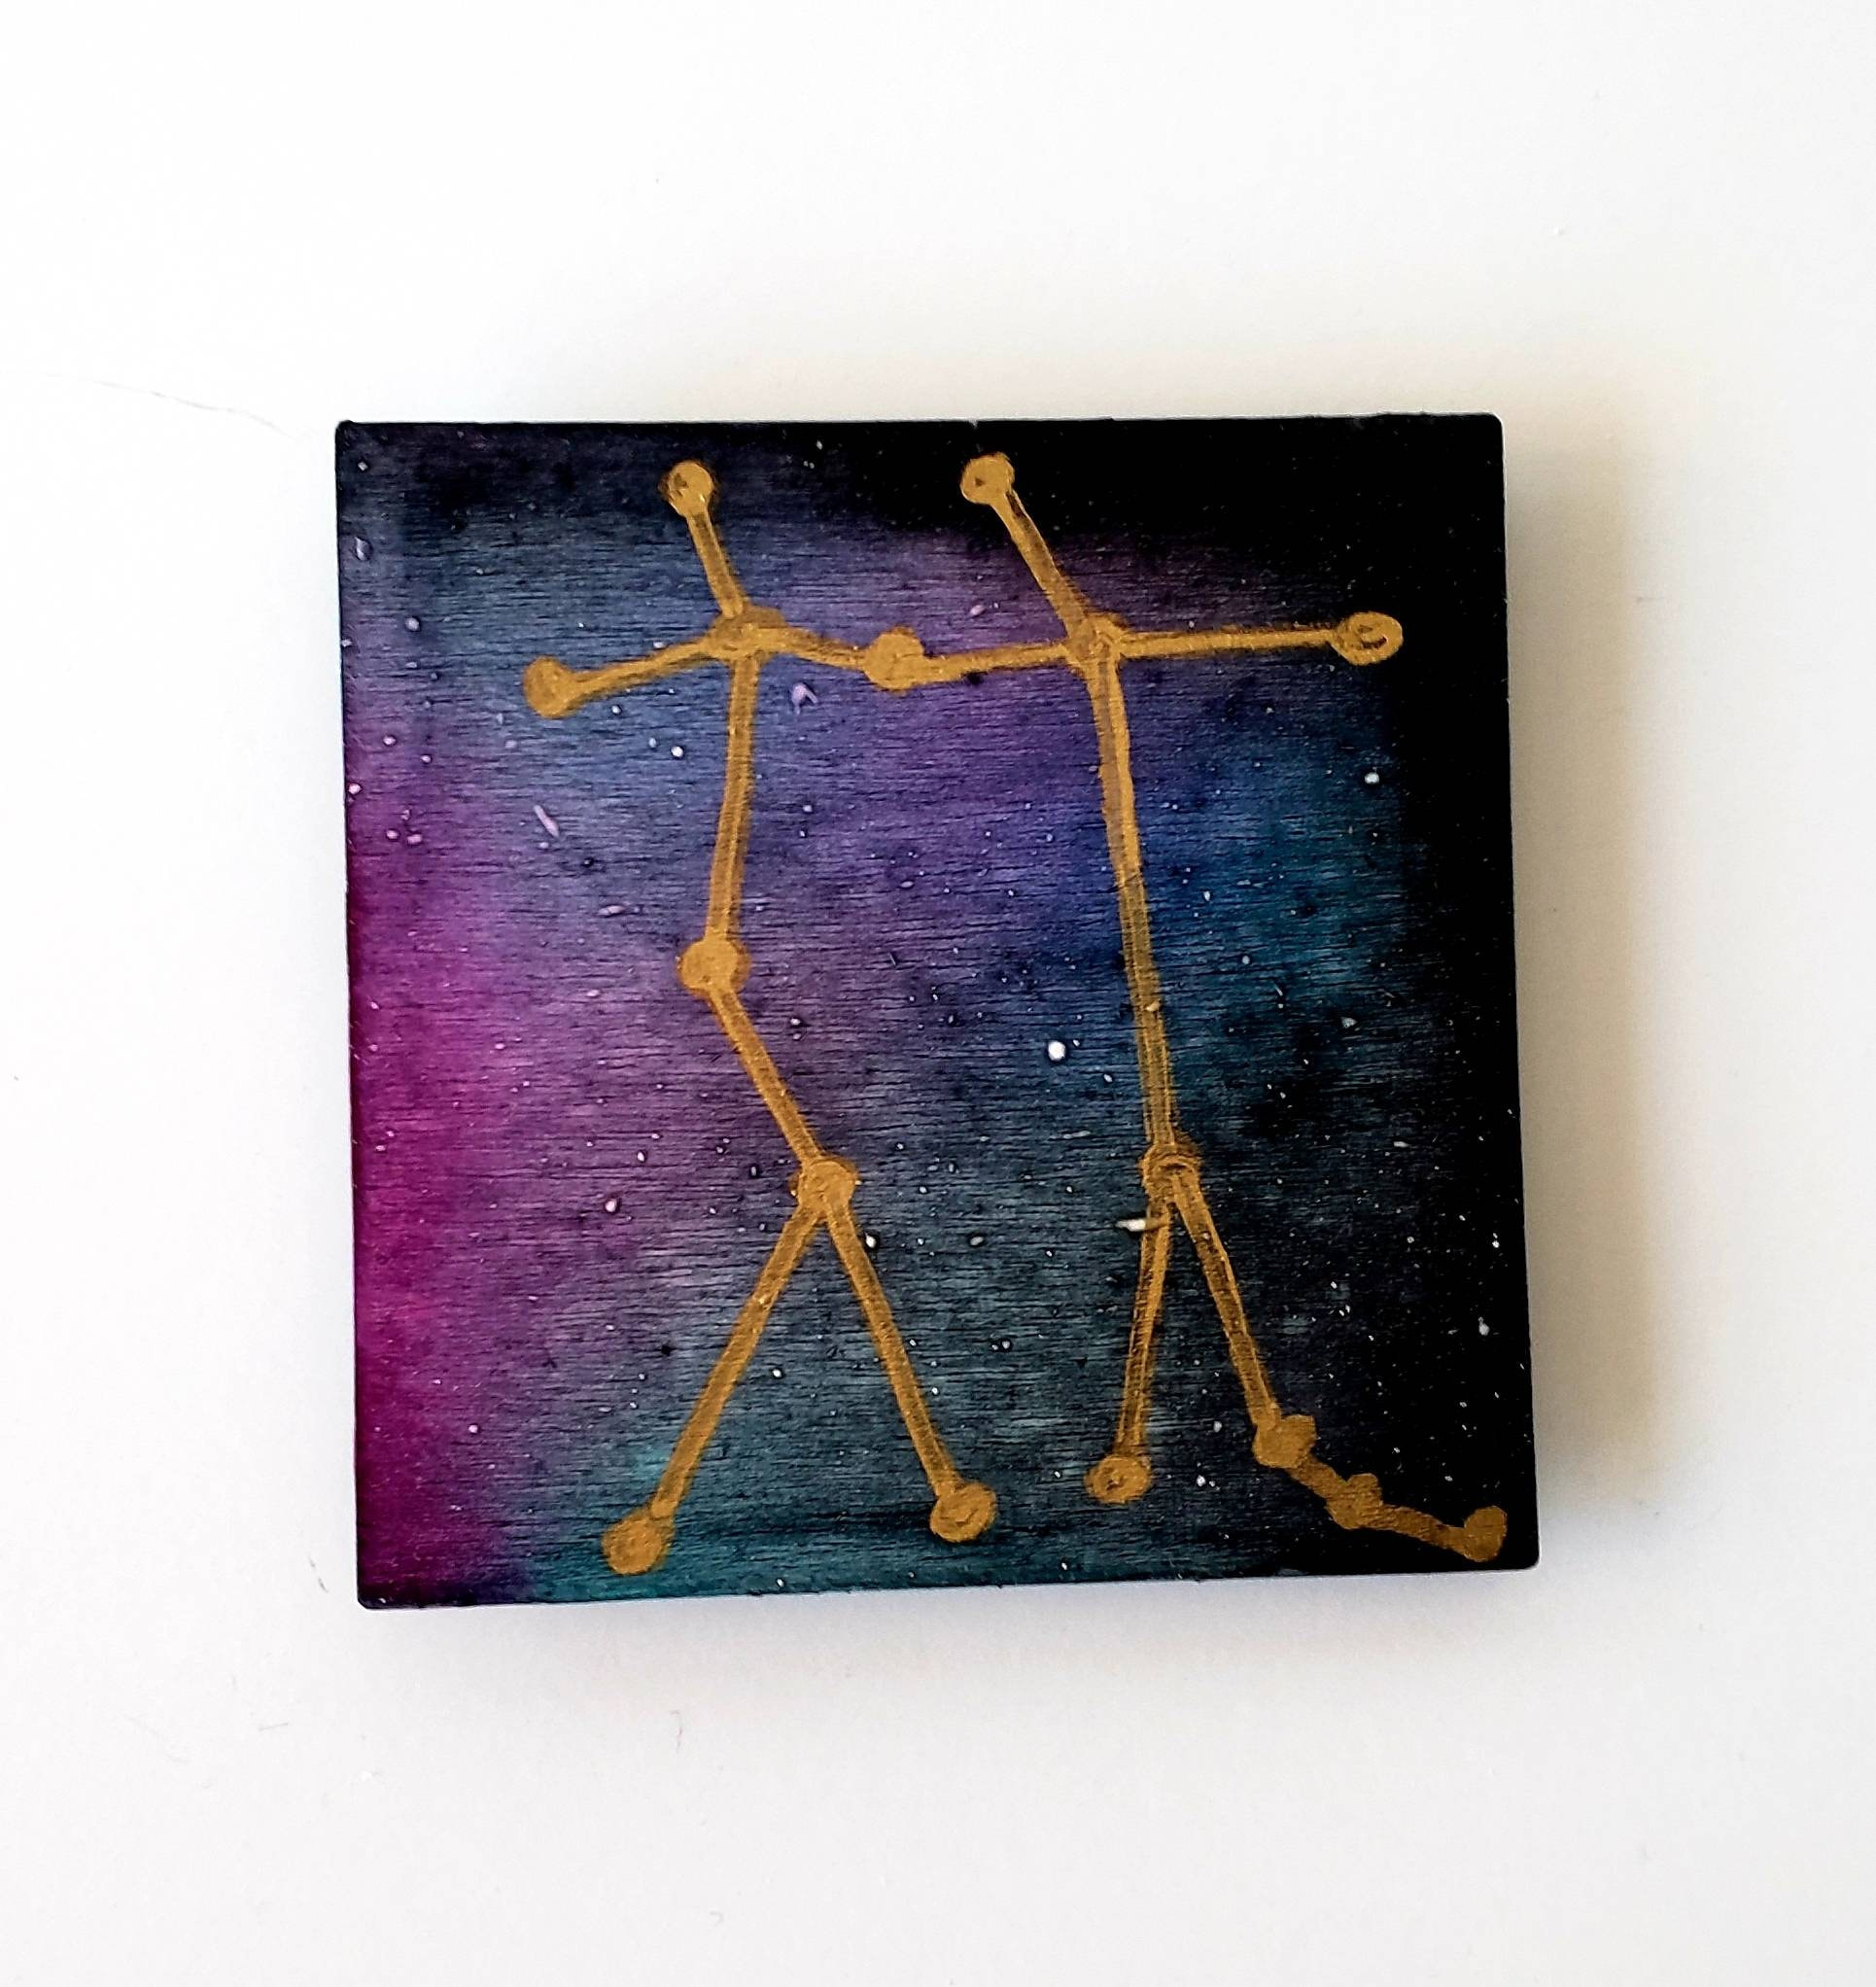 Gemini Refrigerator Magnet, Abstract Alcohol Ink Abstract Gemini Original  Square Magnet